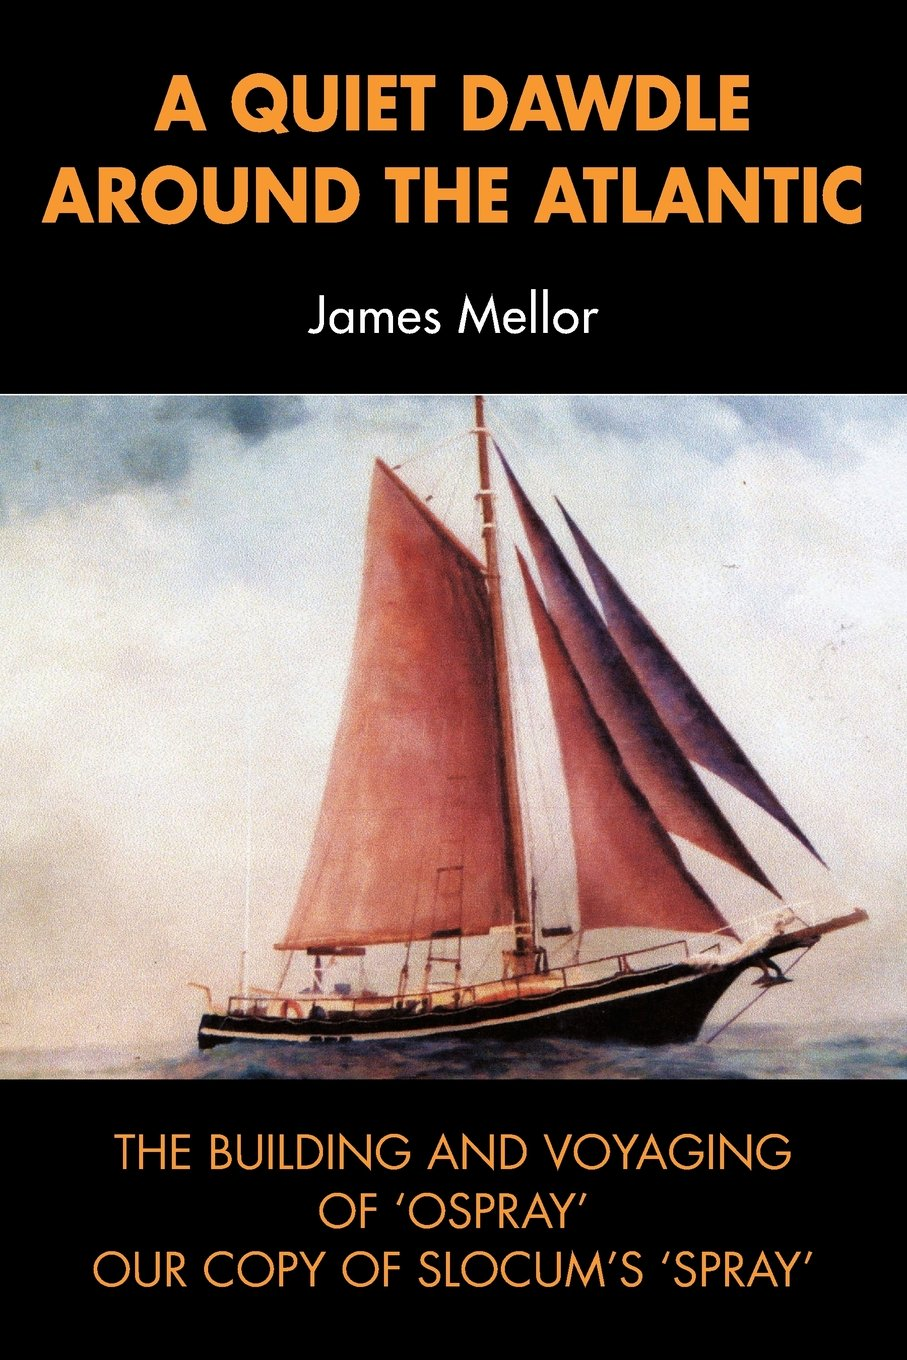 Download A Quiet Dawdle Around the Atlantic - The Building and Voyaging of 'Osprey' Our Copy of Slocum's 'Spray' PDF ePub fb2 book